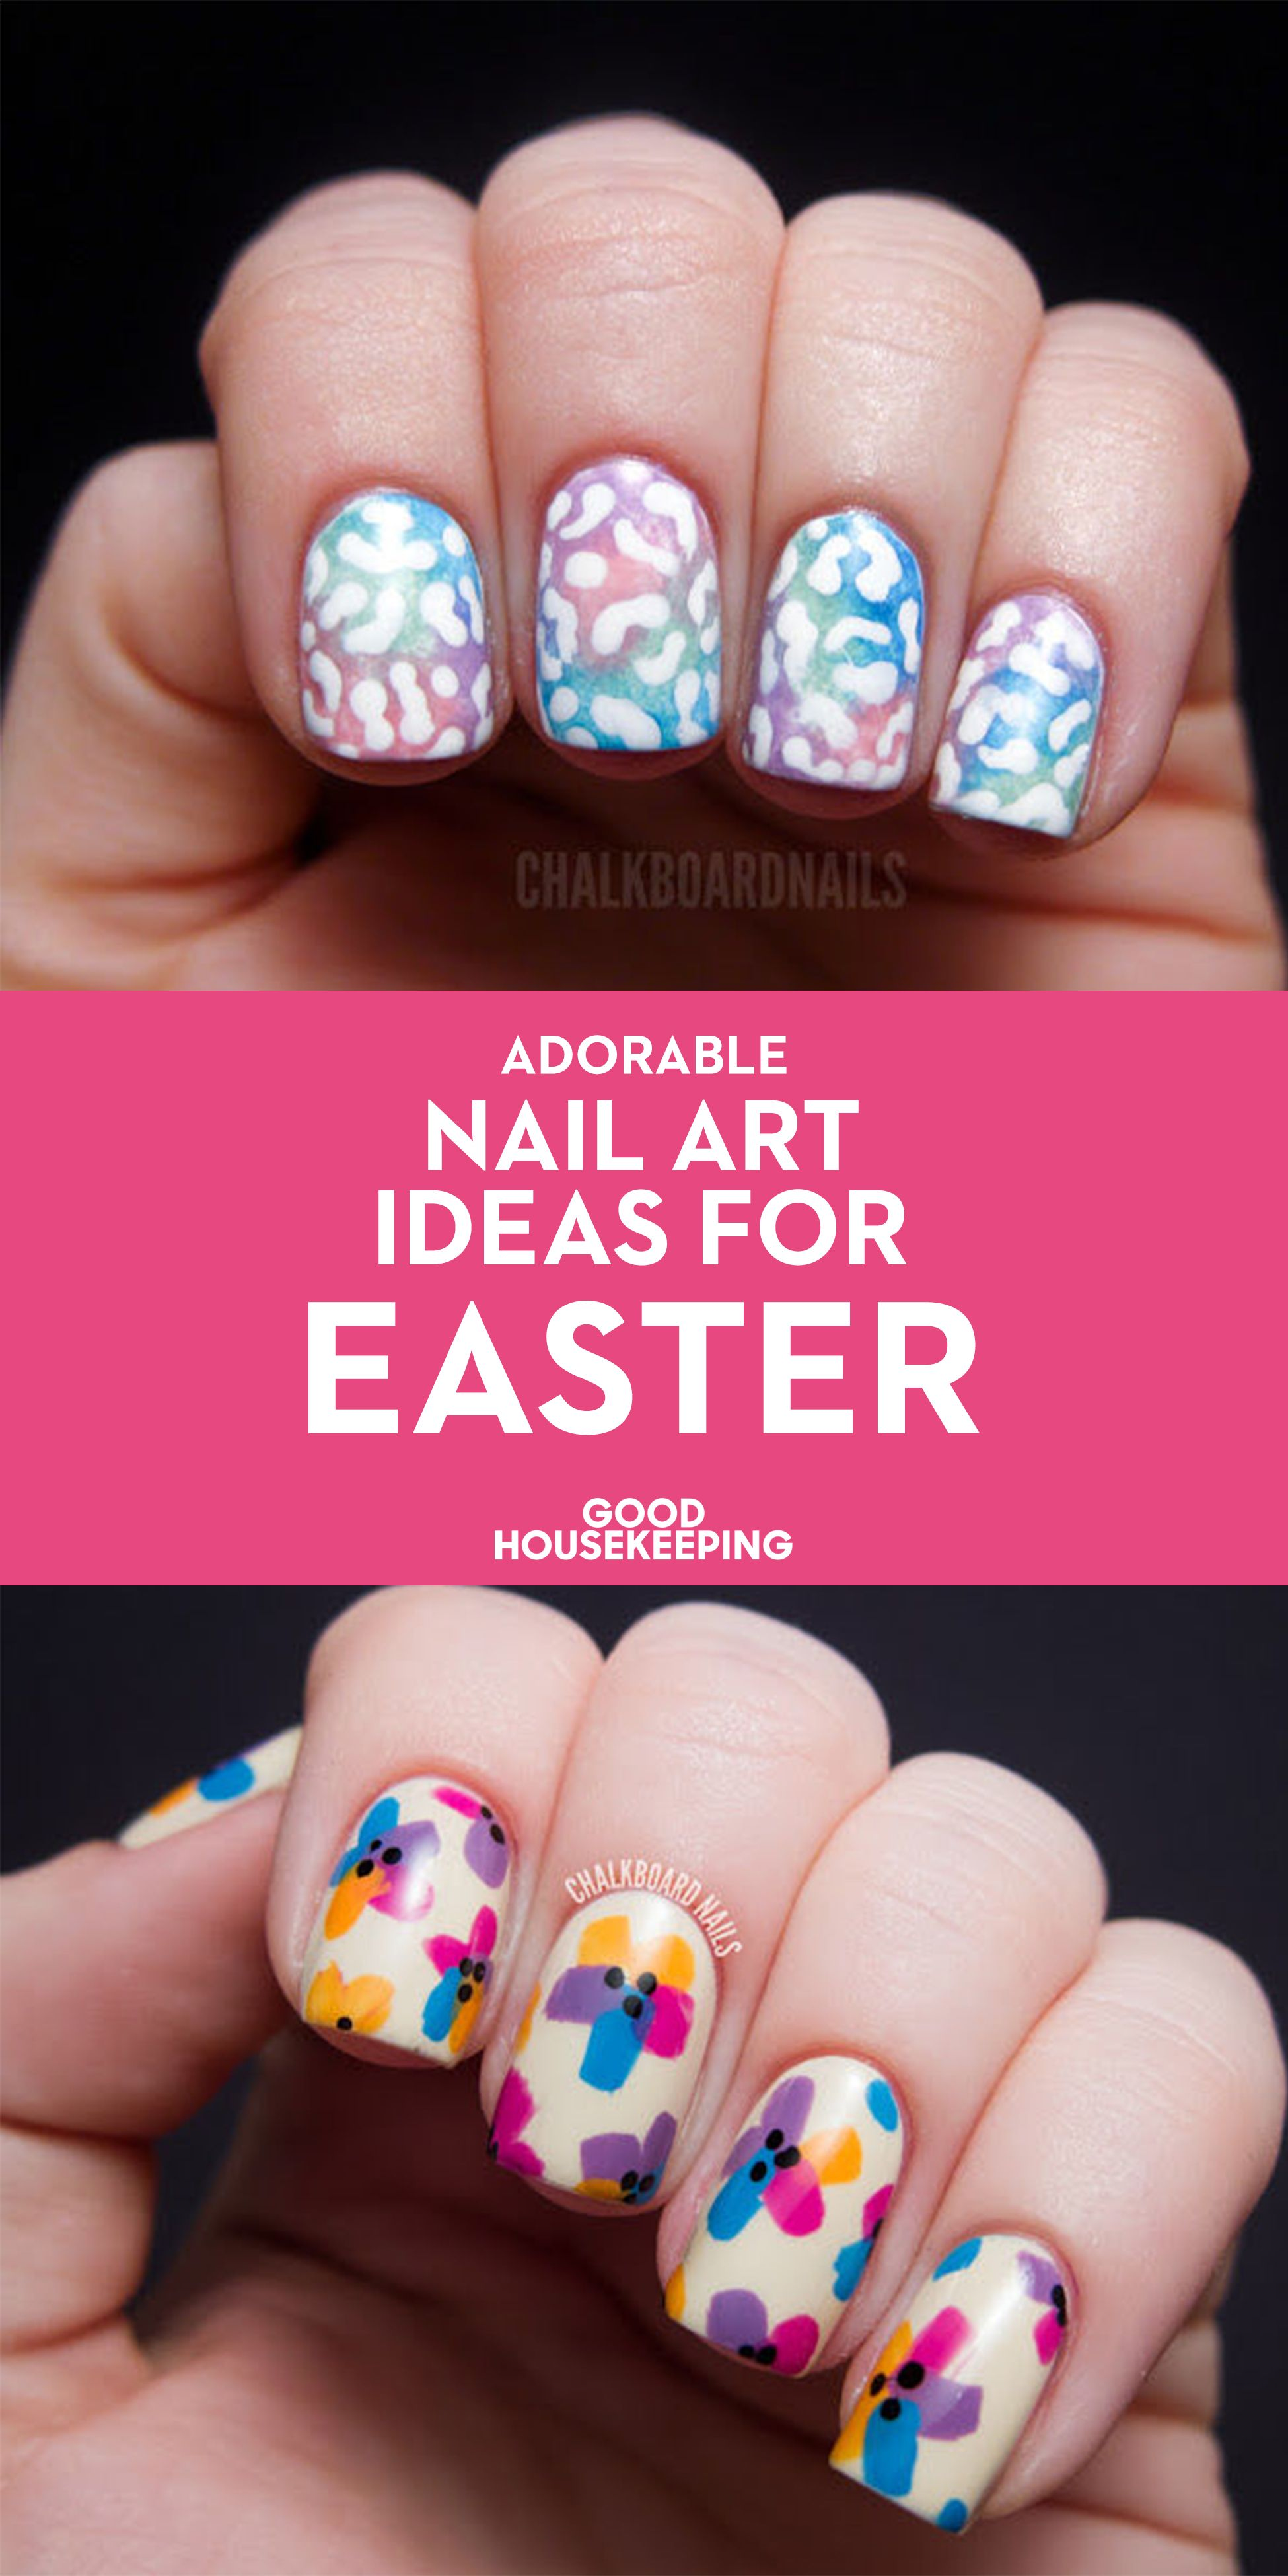 21 Cute Easter Nail Designs for 2019 21 Cute Easter Nail Designs for 2019 new foto